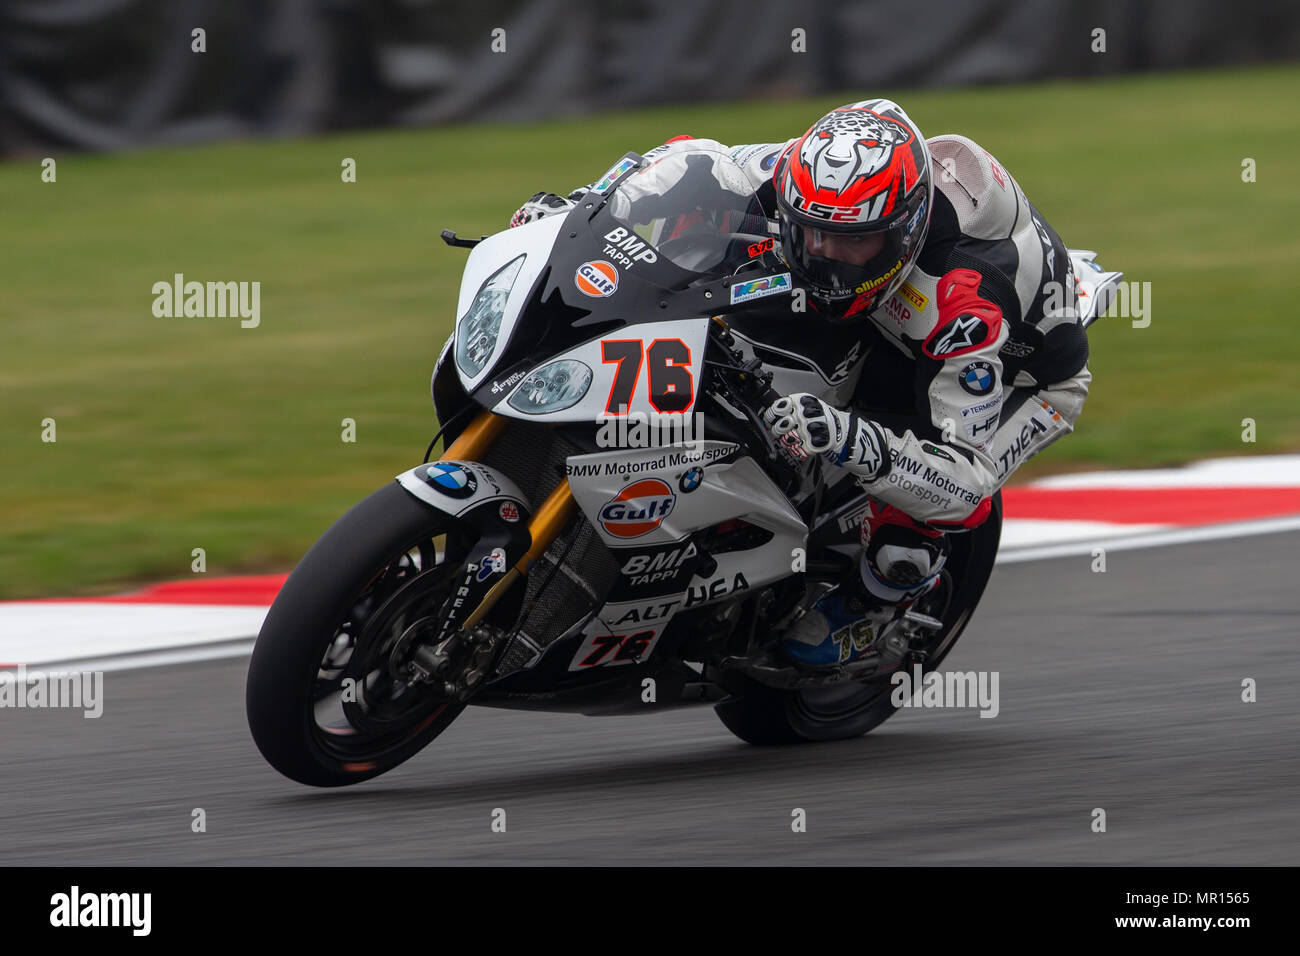 Donington Park Circuit, Derby, UK. 25th May, 2018. World Superbikes, Prosecco DOC UK Round 6, Friday free practice; Loris Baz riding a Gulf Althea BMW Racing Team BMW S 1000 RR Credit: Action Plus Sports/Alamy Live News Stock Photo